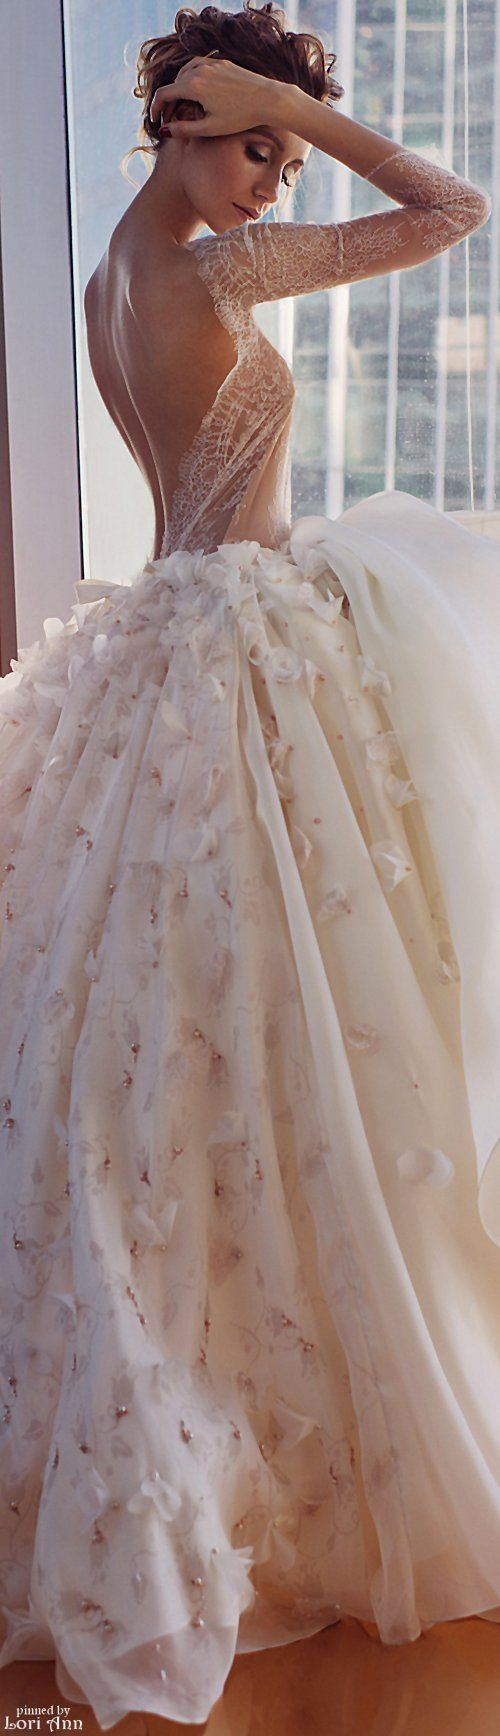 best images about my dream wedding dress on pinterest